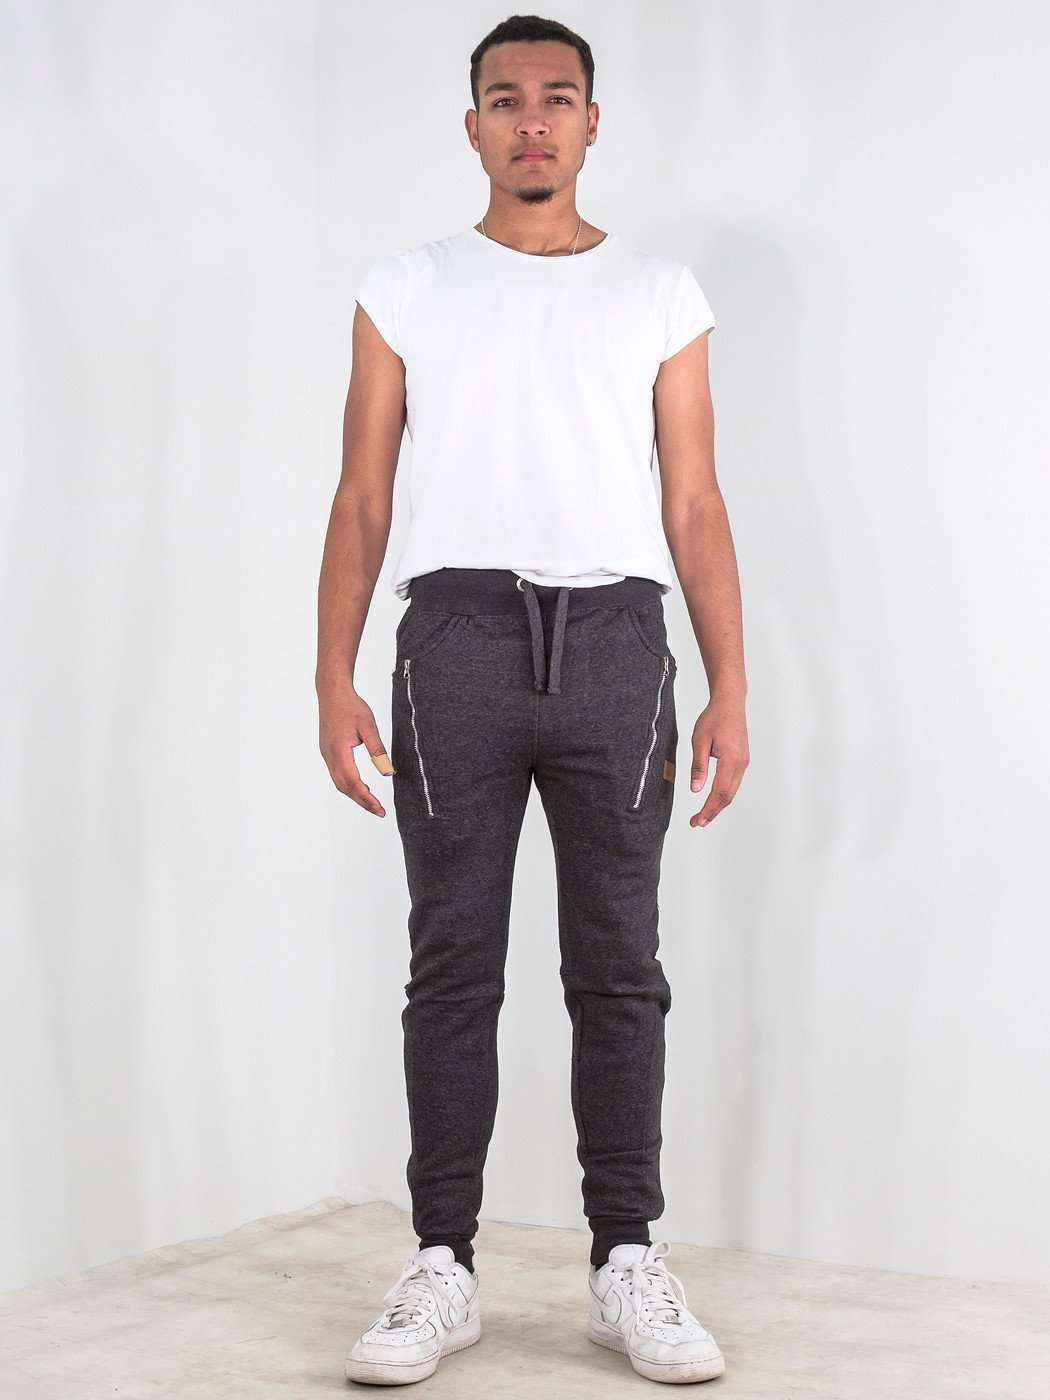 Wholesale (8 Piece) Zipped Skinny Joggers Bottom